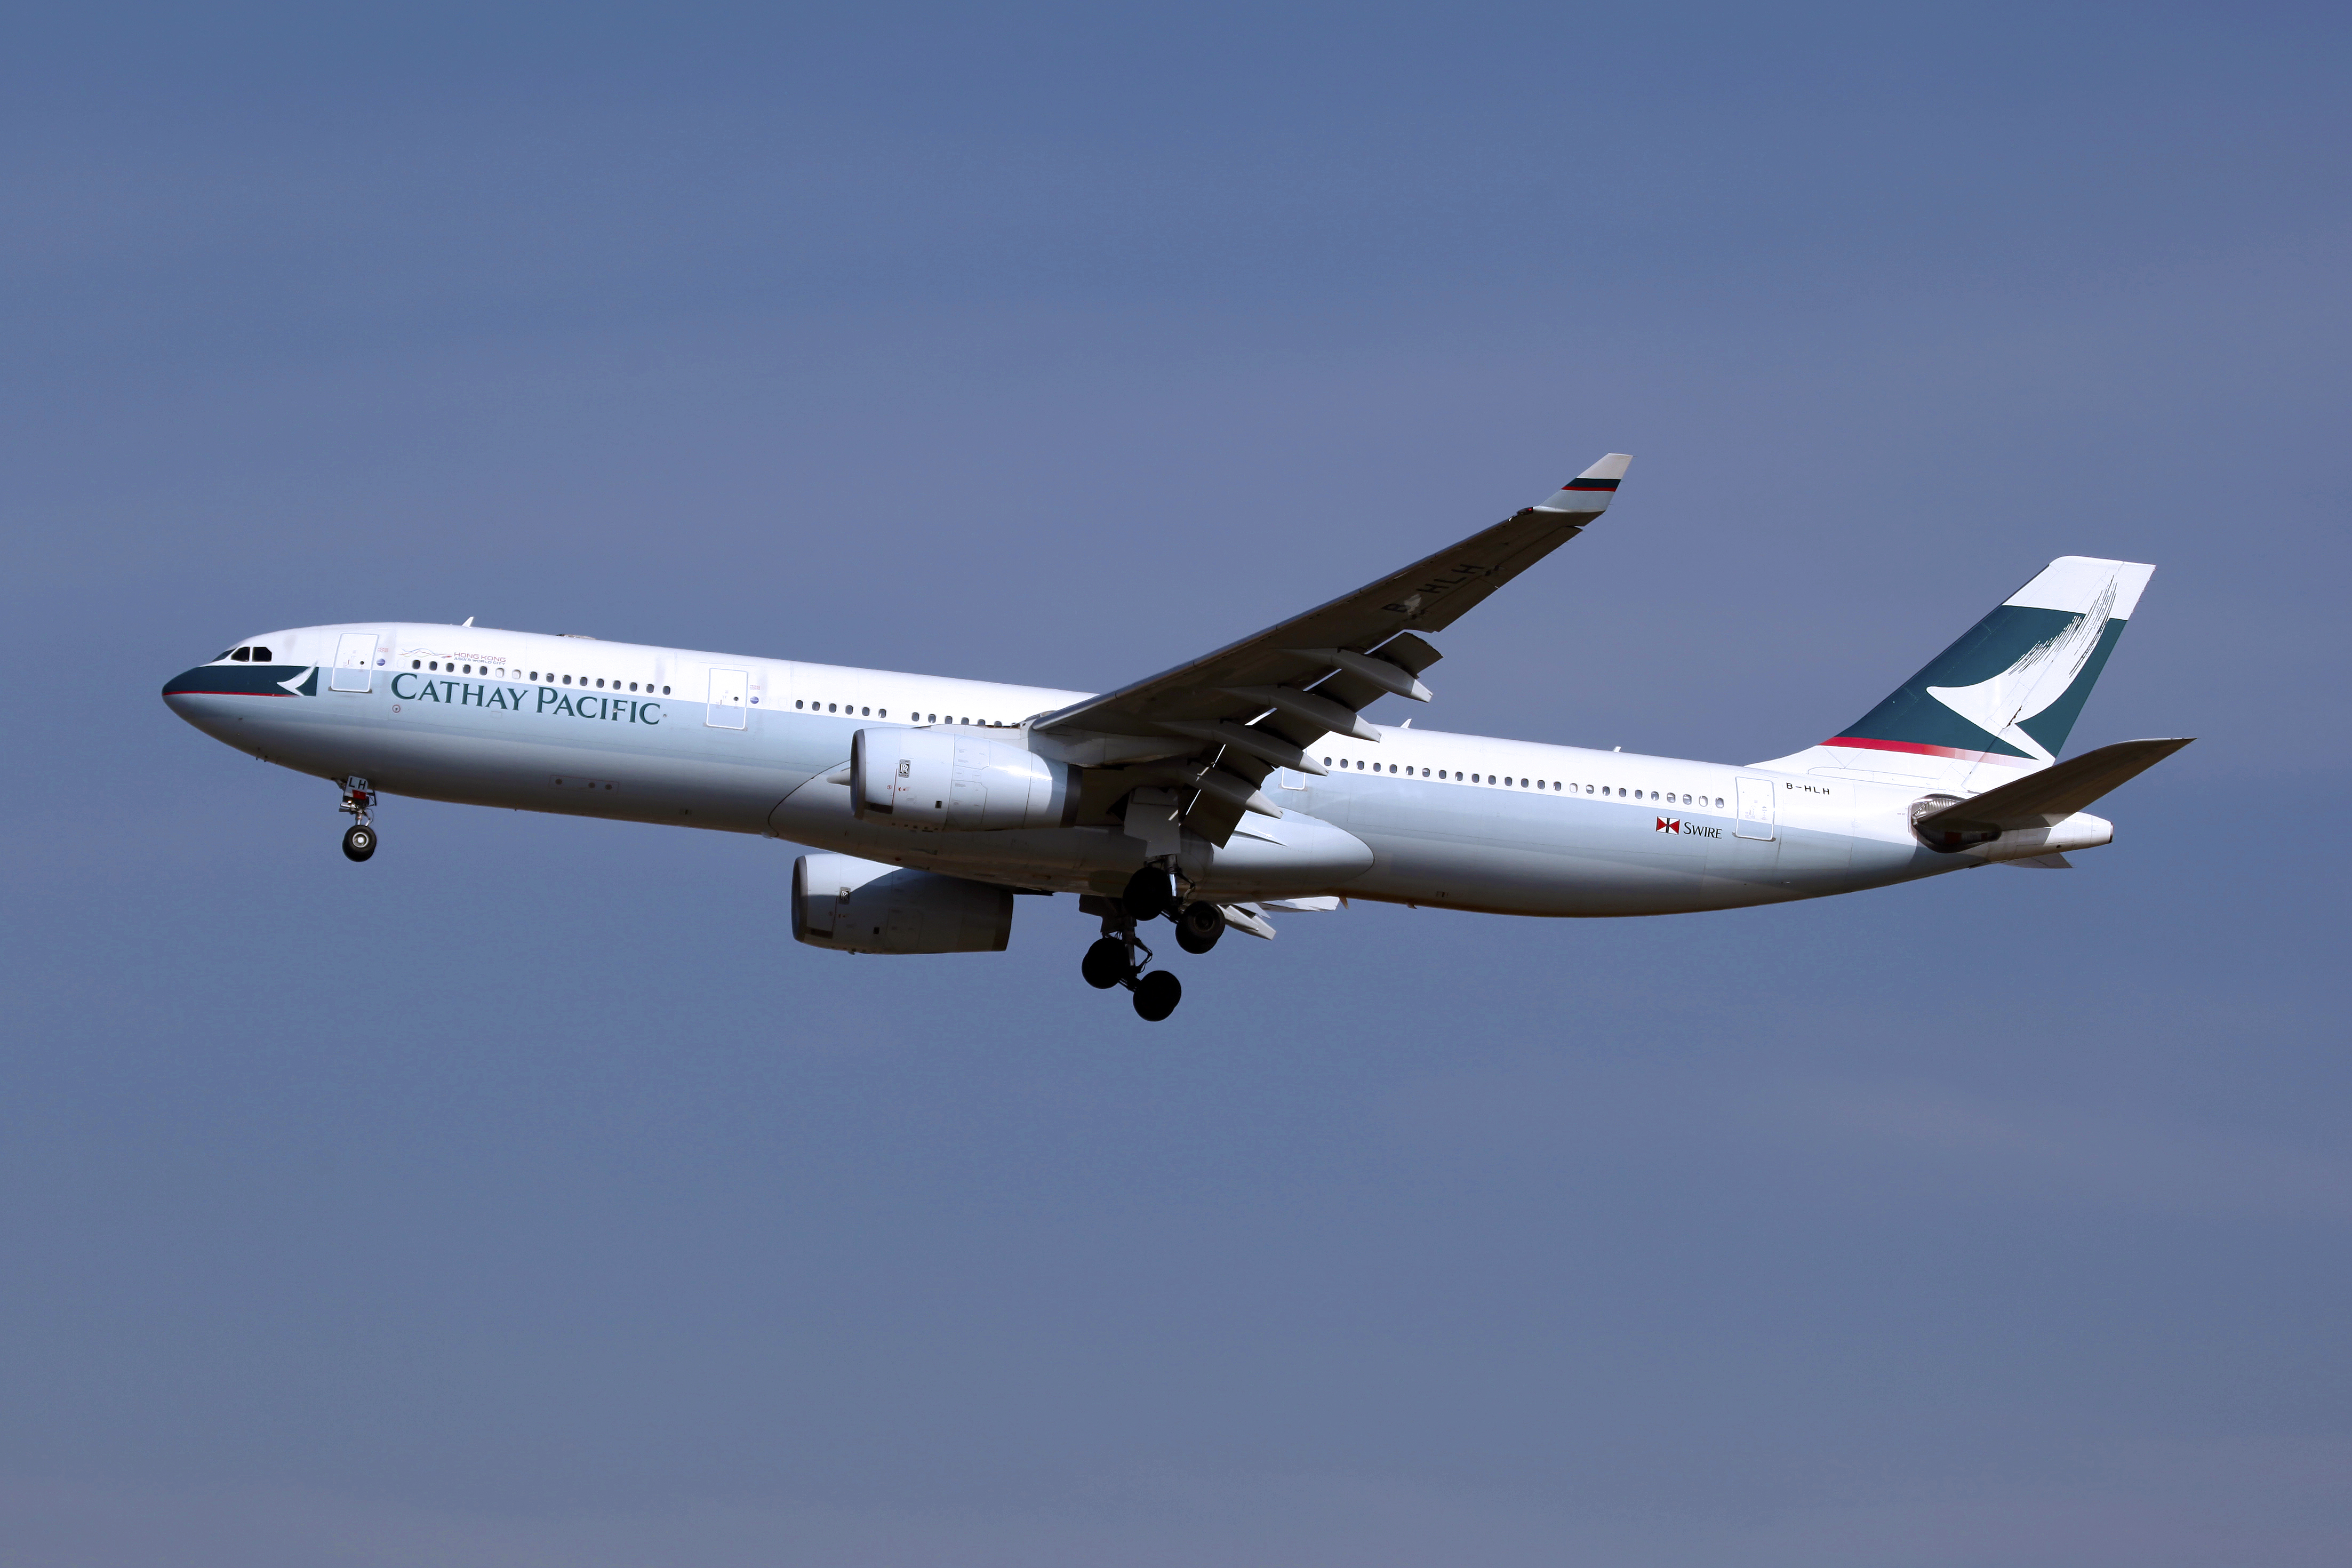 B-HLH_-_Cathay_Pacific_-_Airbus_A330-342_-_ICN_(16189426974)